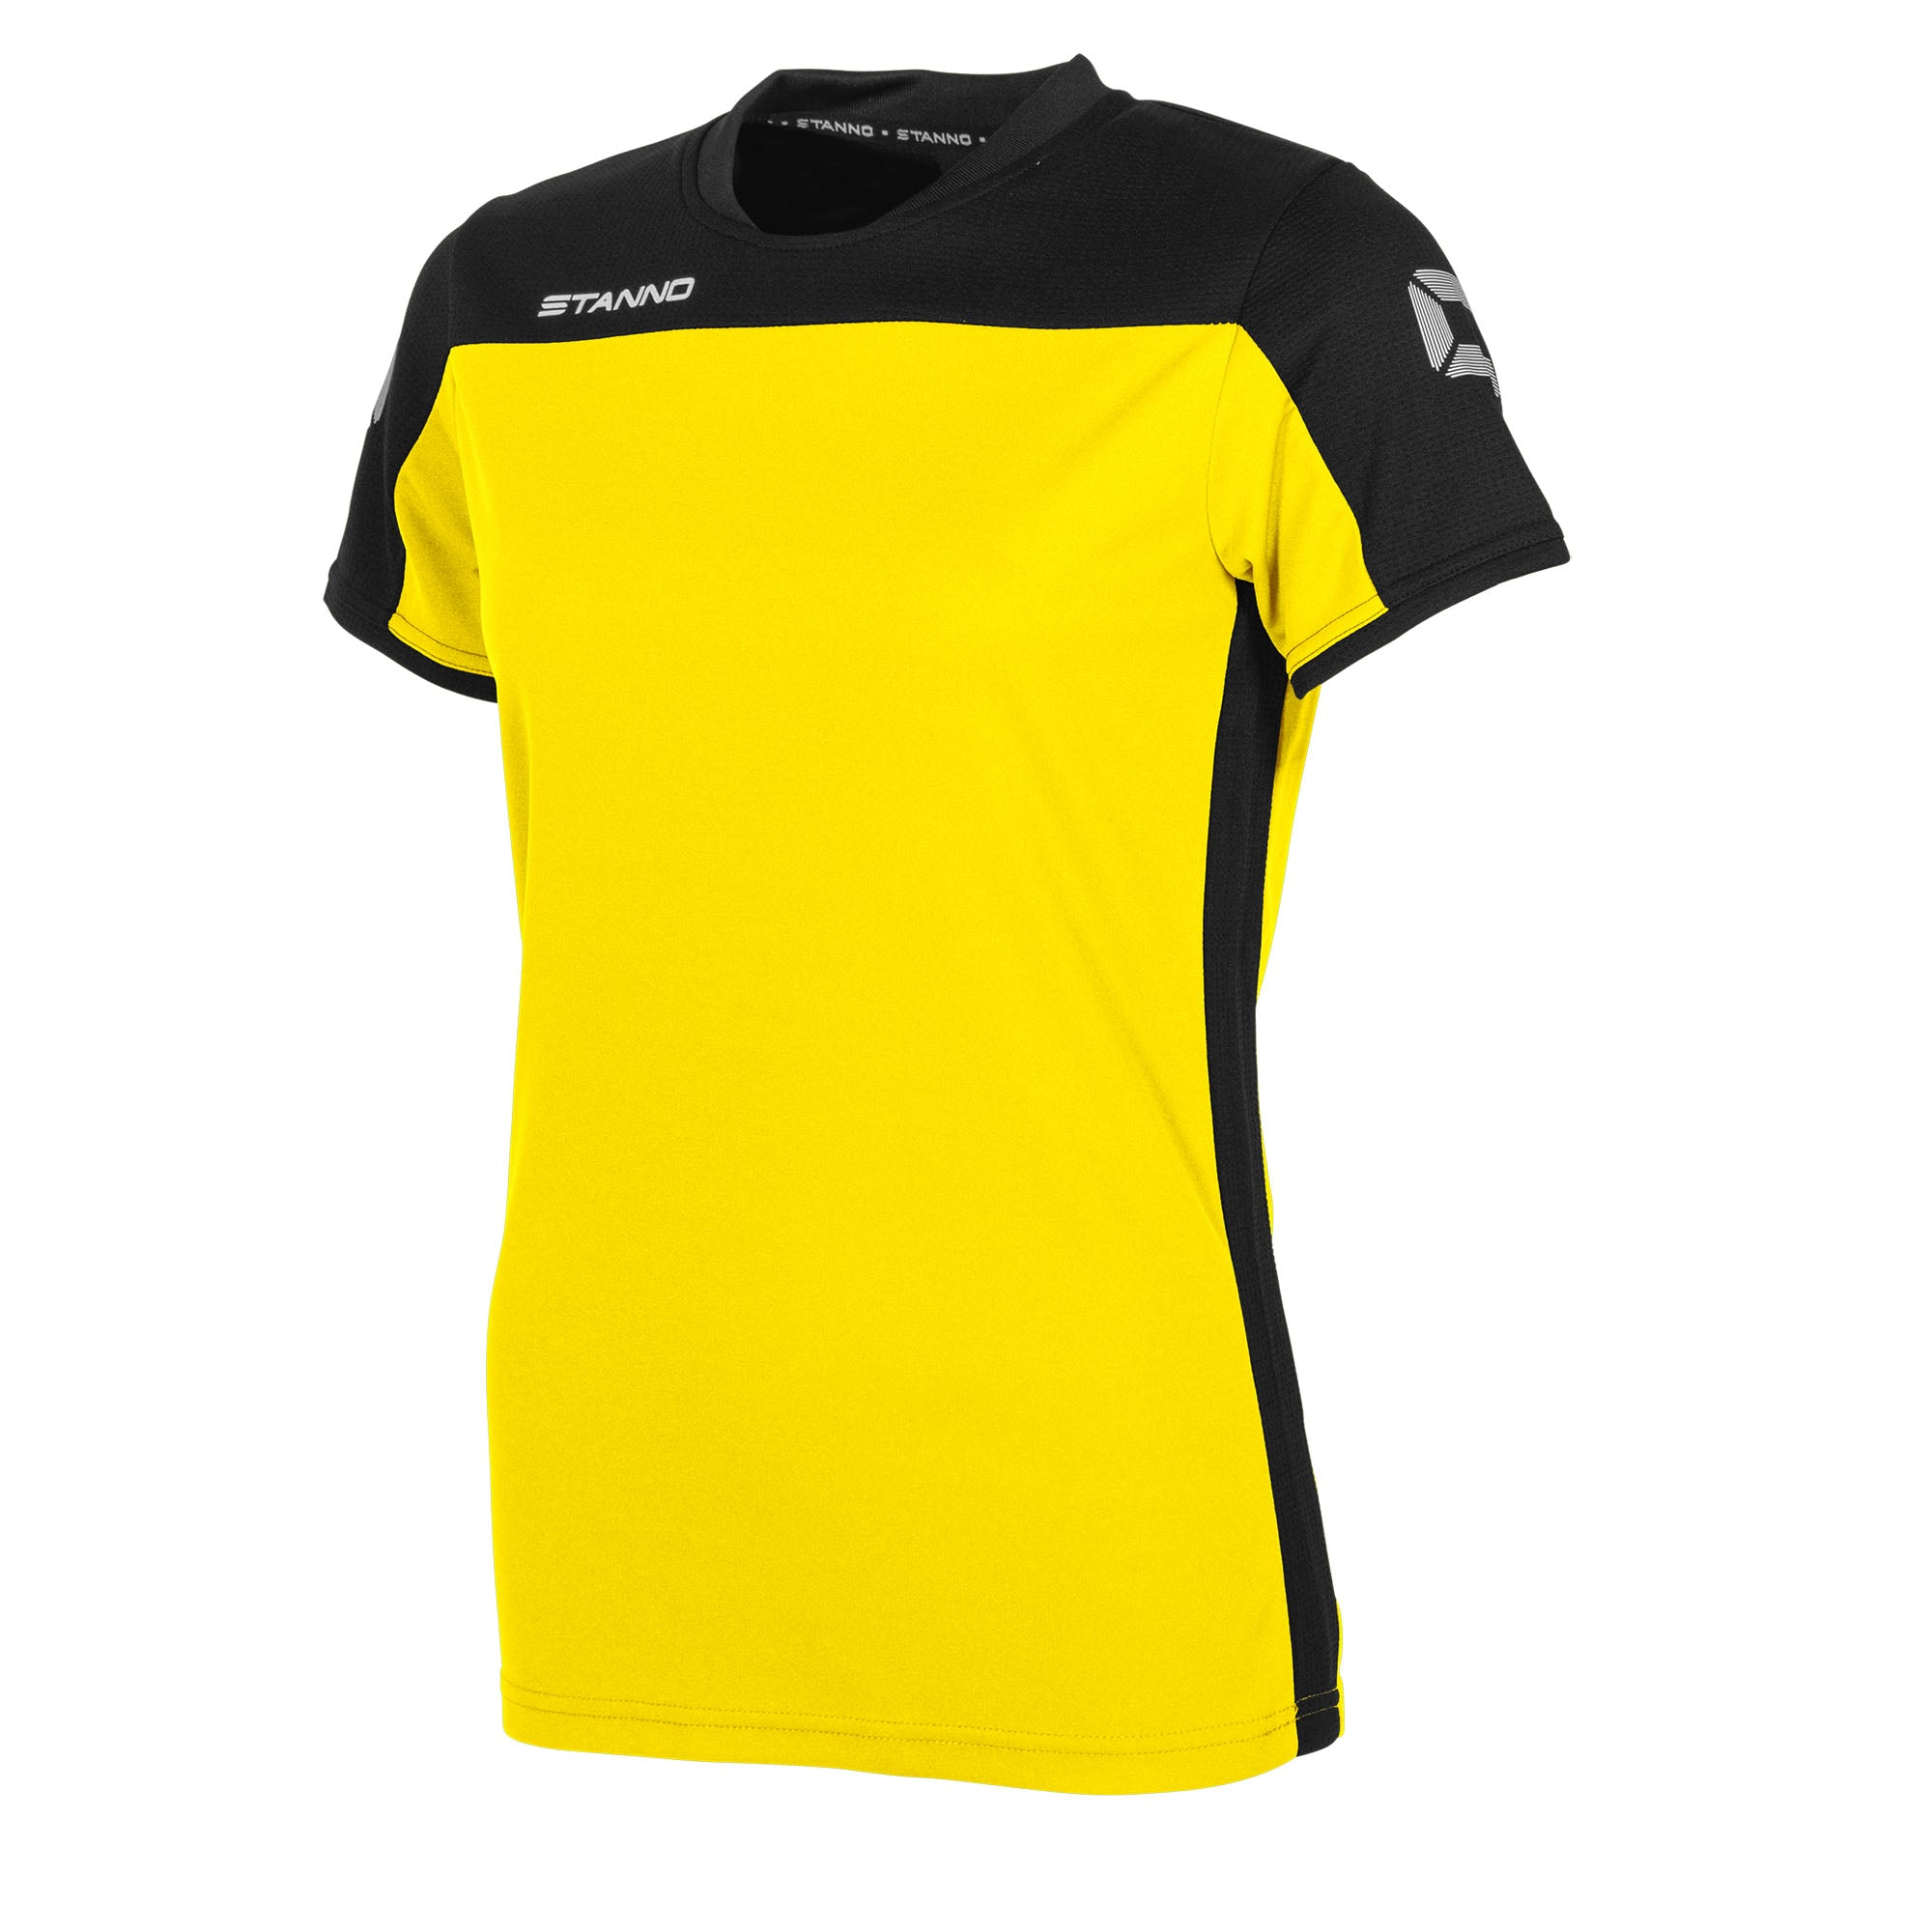 Stanno Pride ladies t-shirt in yellow, with mesh contrast black shoulder and side panel